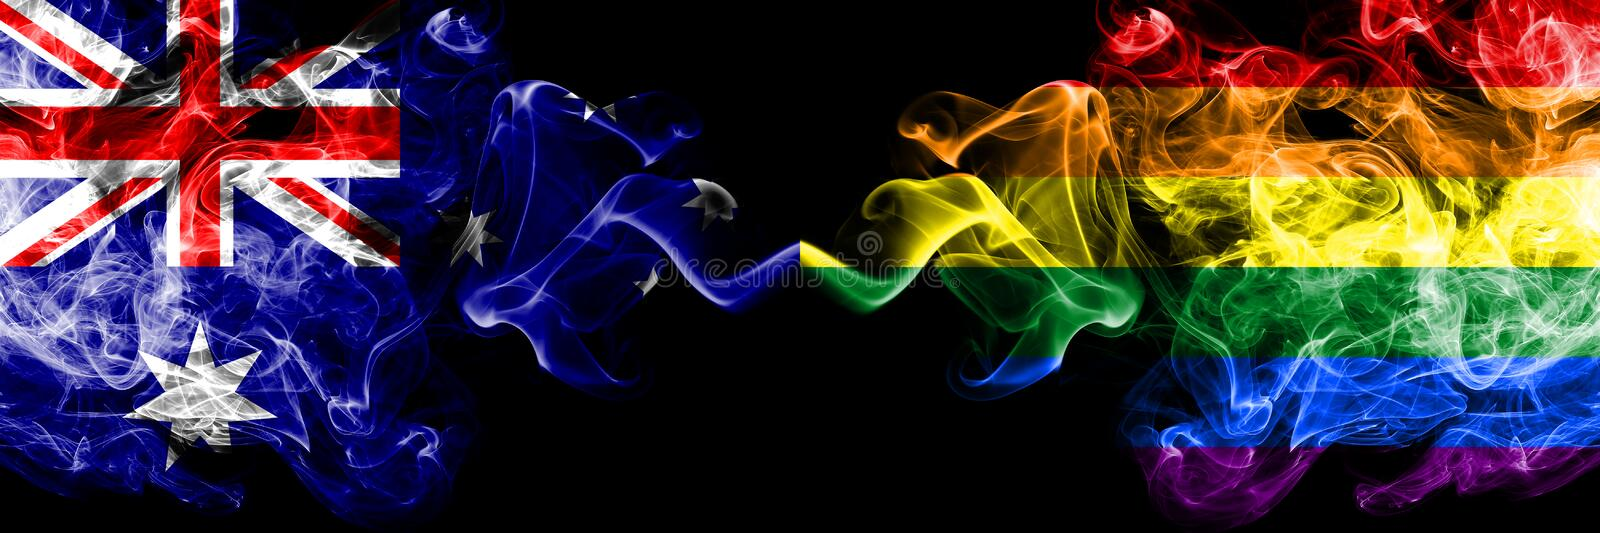 Australia vs Gay pride smoky mystic flags placed side by side. Thick colored silky smokes combination of national flags of. Australia and Gay pride royalty free stock images